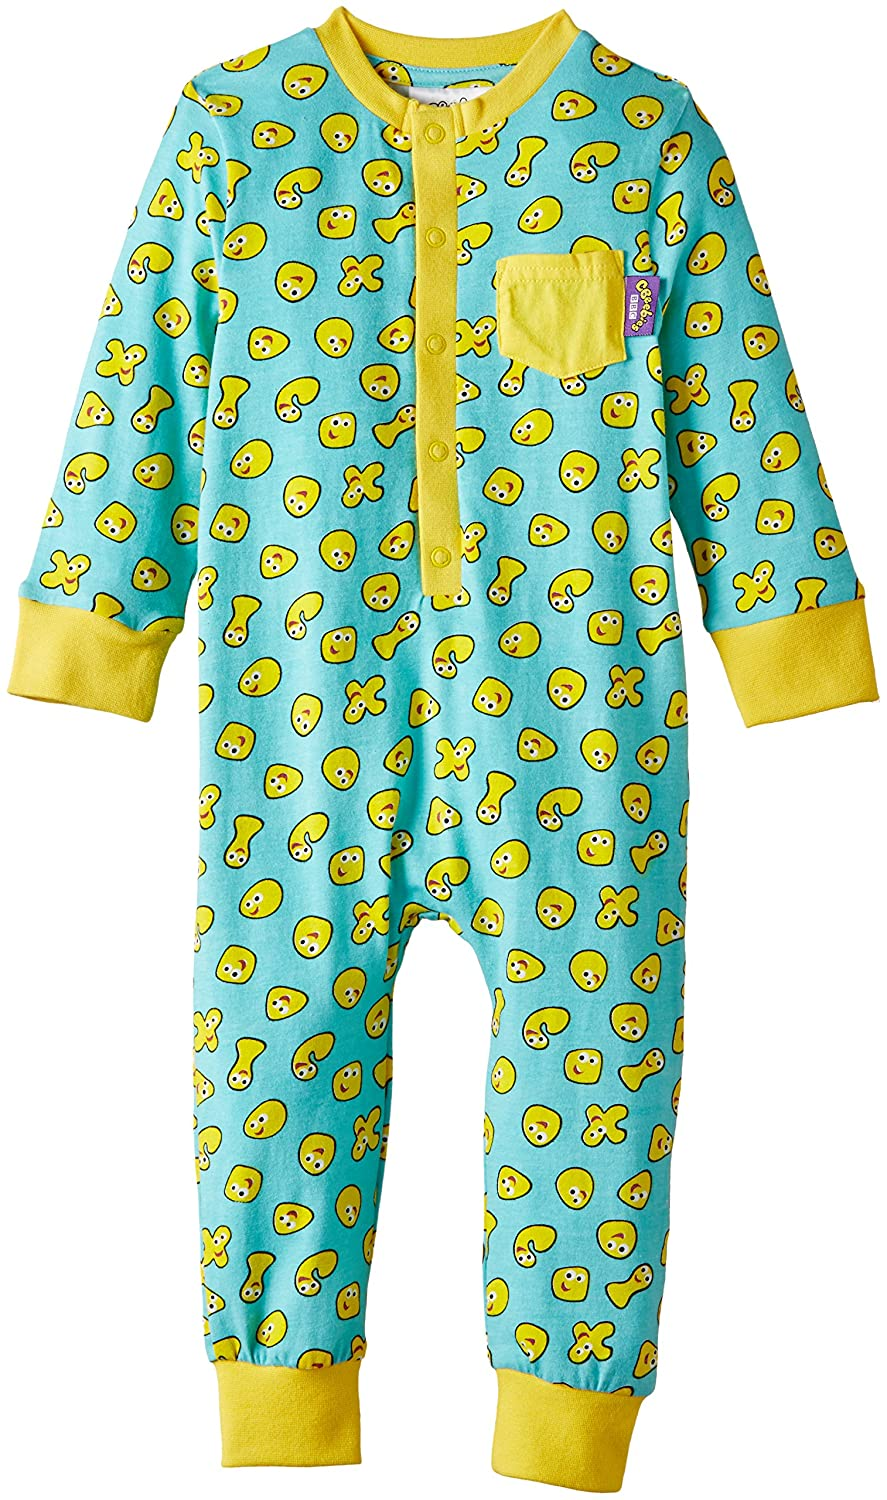 CBeebies Boy's Bugs Onesie